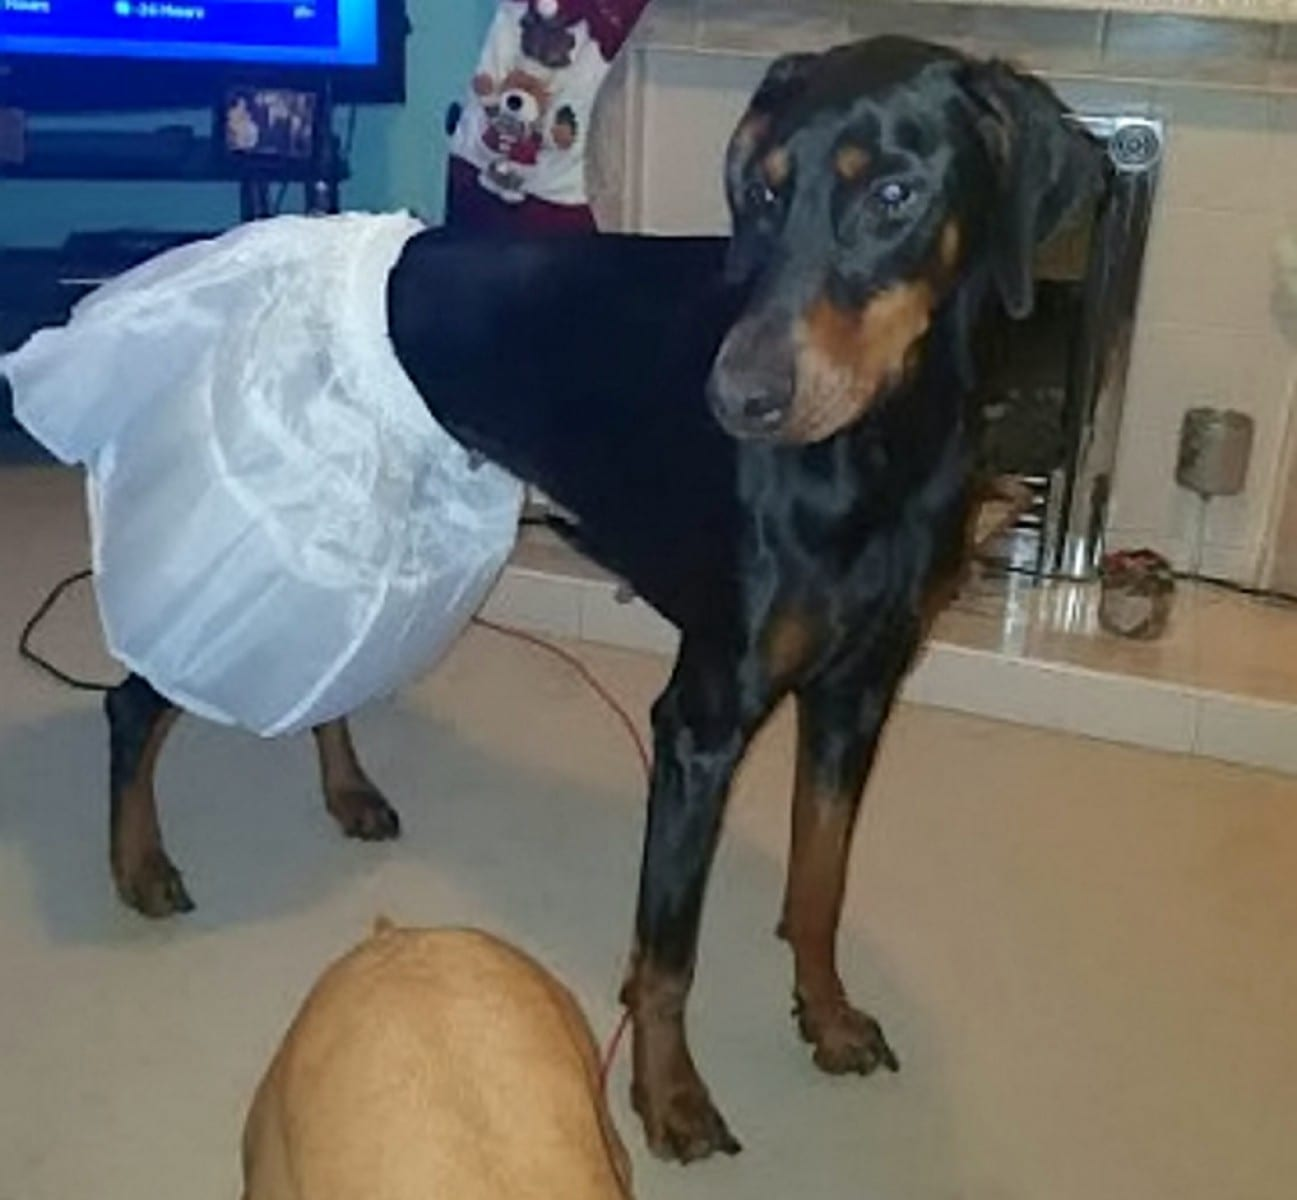 Bride-To-Be Left Disappointed After The Wedding Dress Underskirt She Purchased From Wish.com Would Only Fit Her DOGS